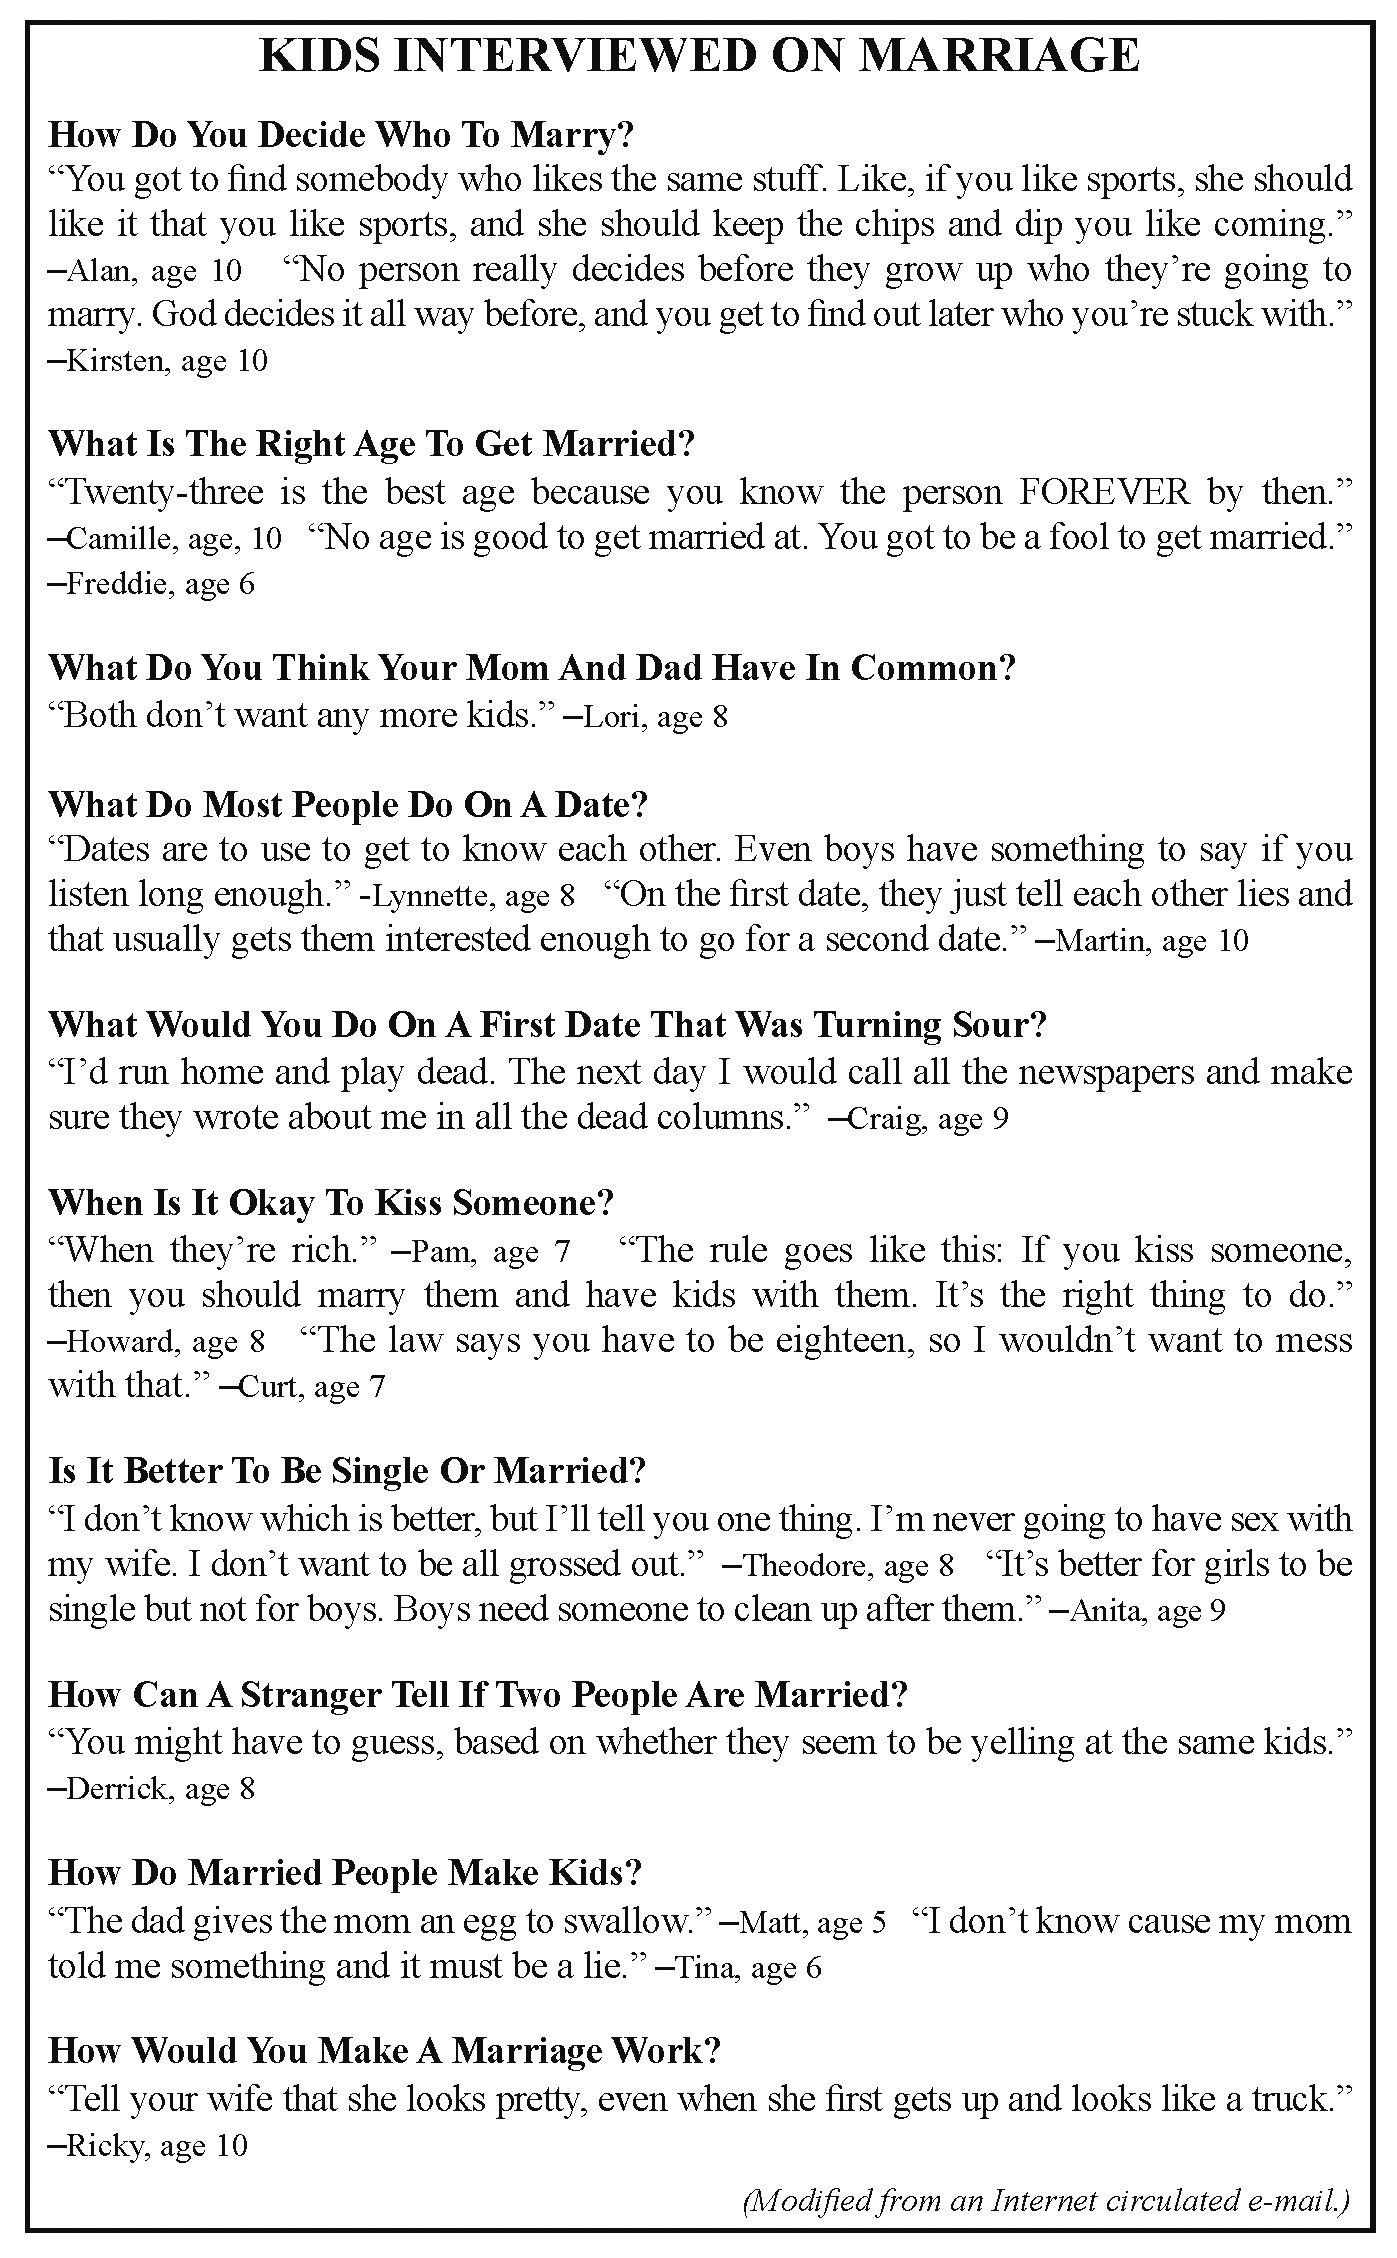 Kids on Marriage